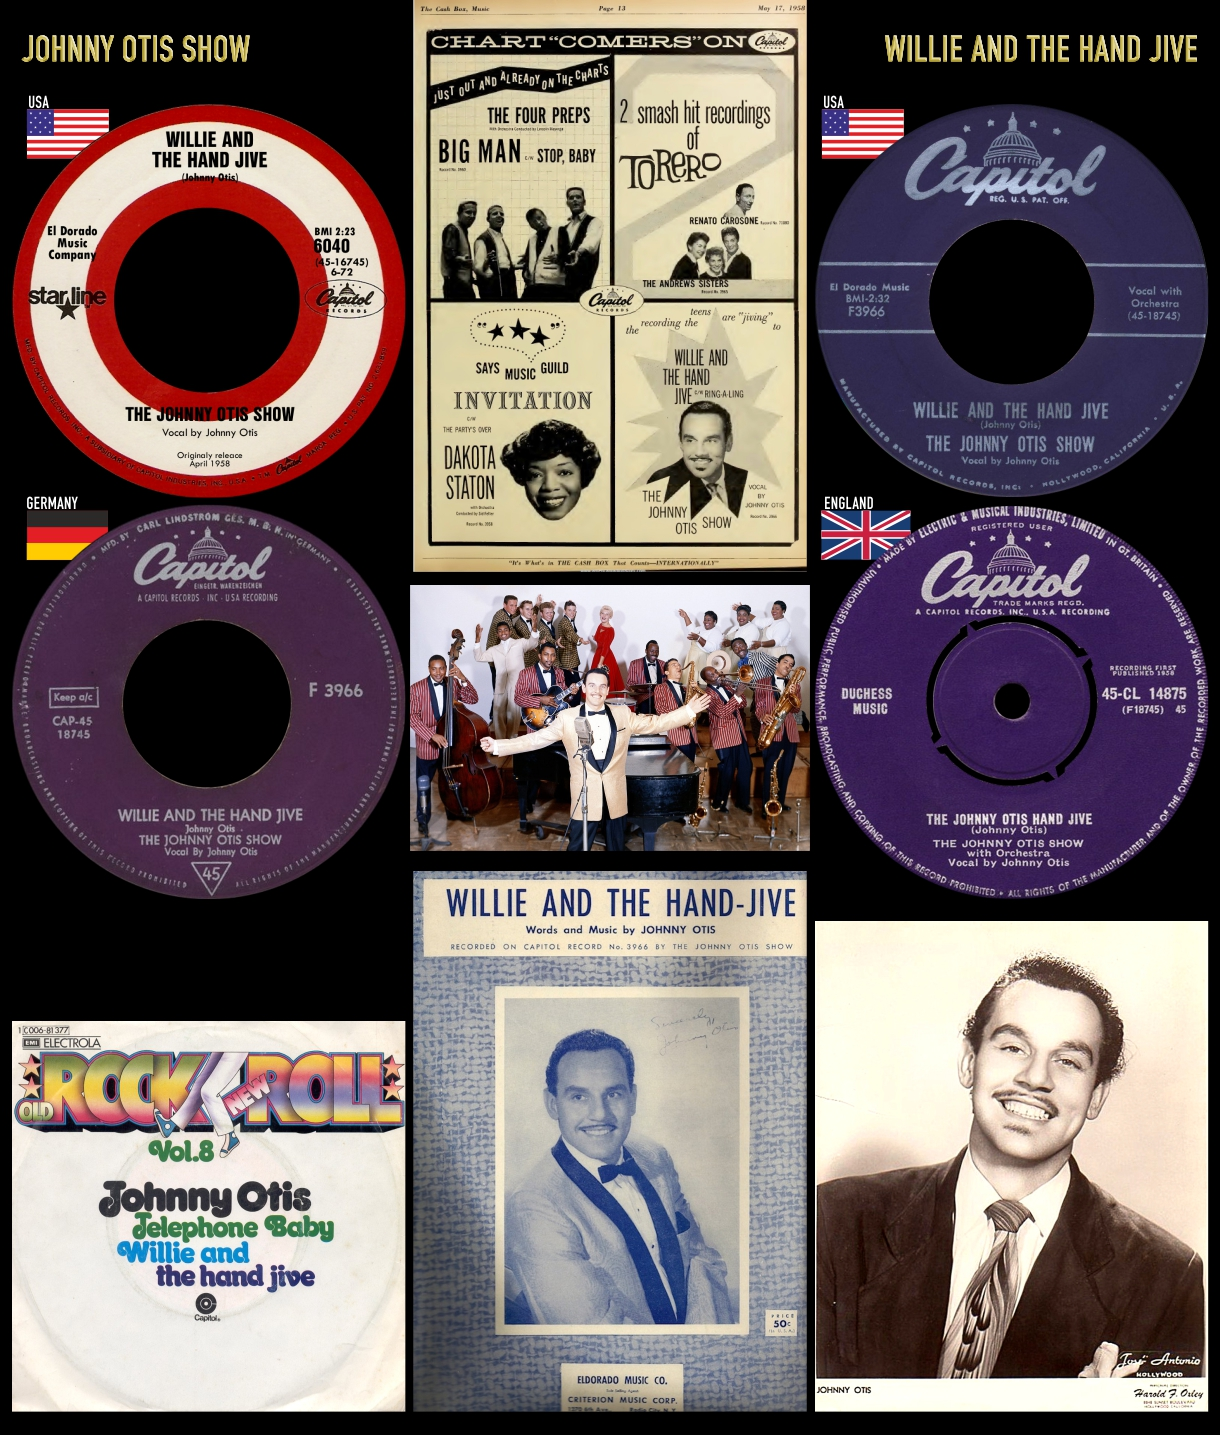 580621_Johnny Otis Show_Willie And The Hand Jive